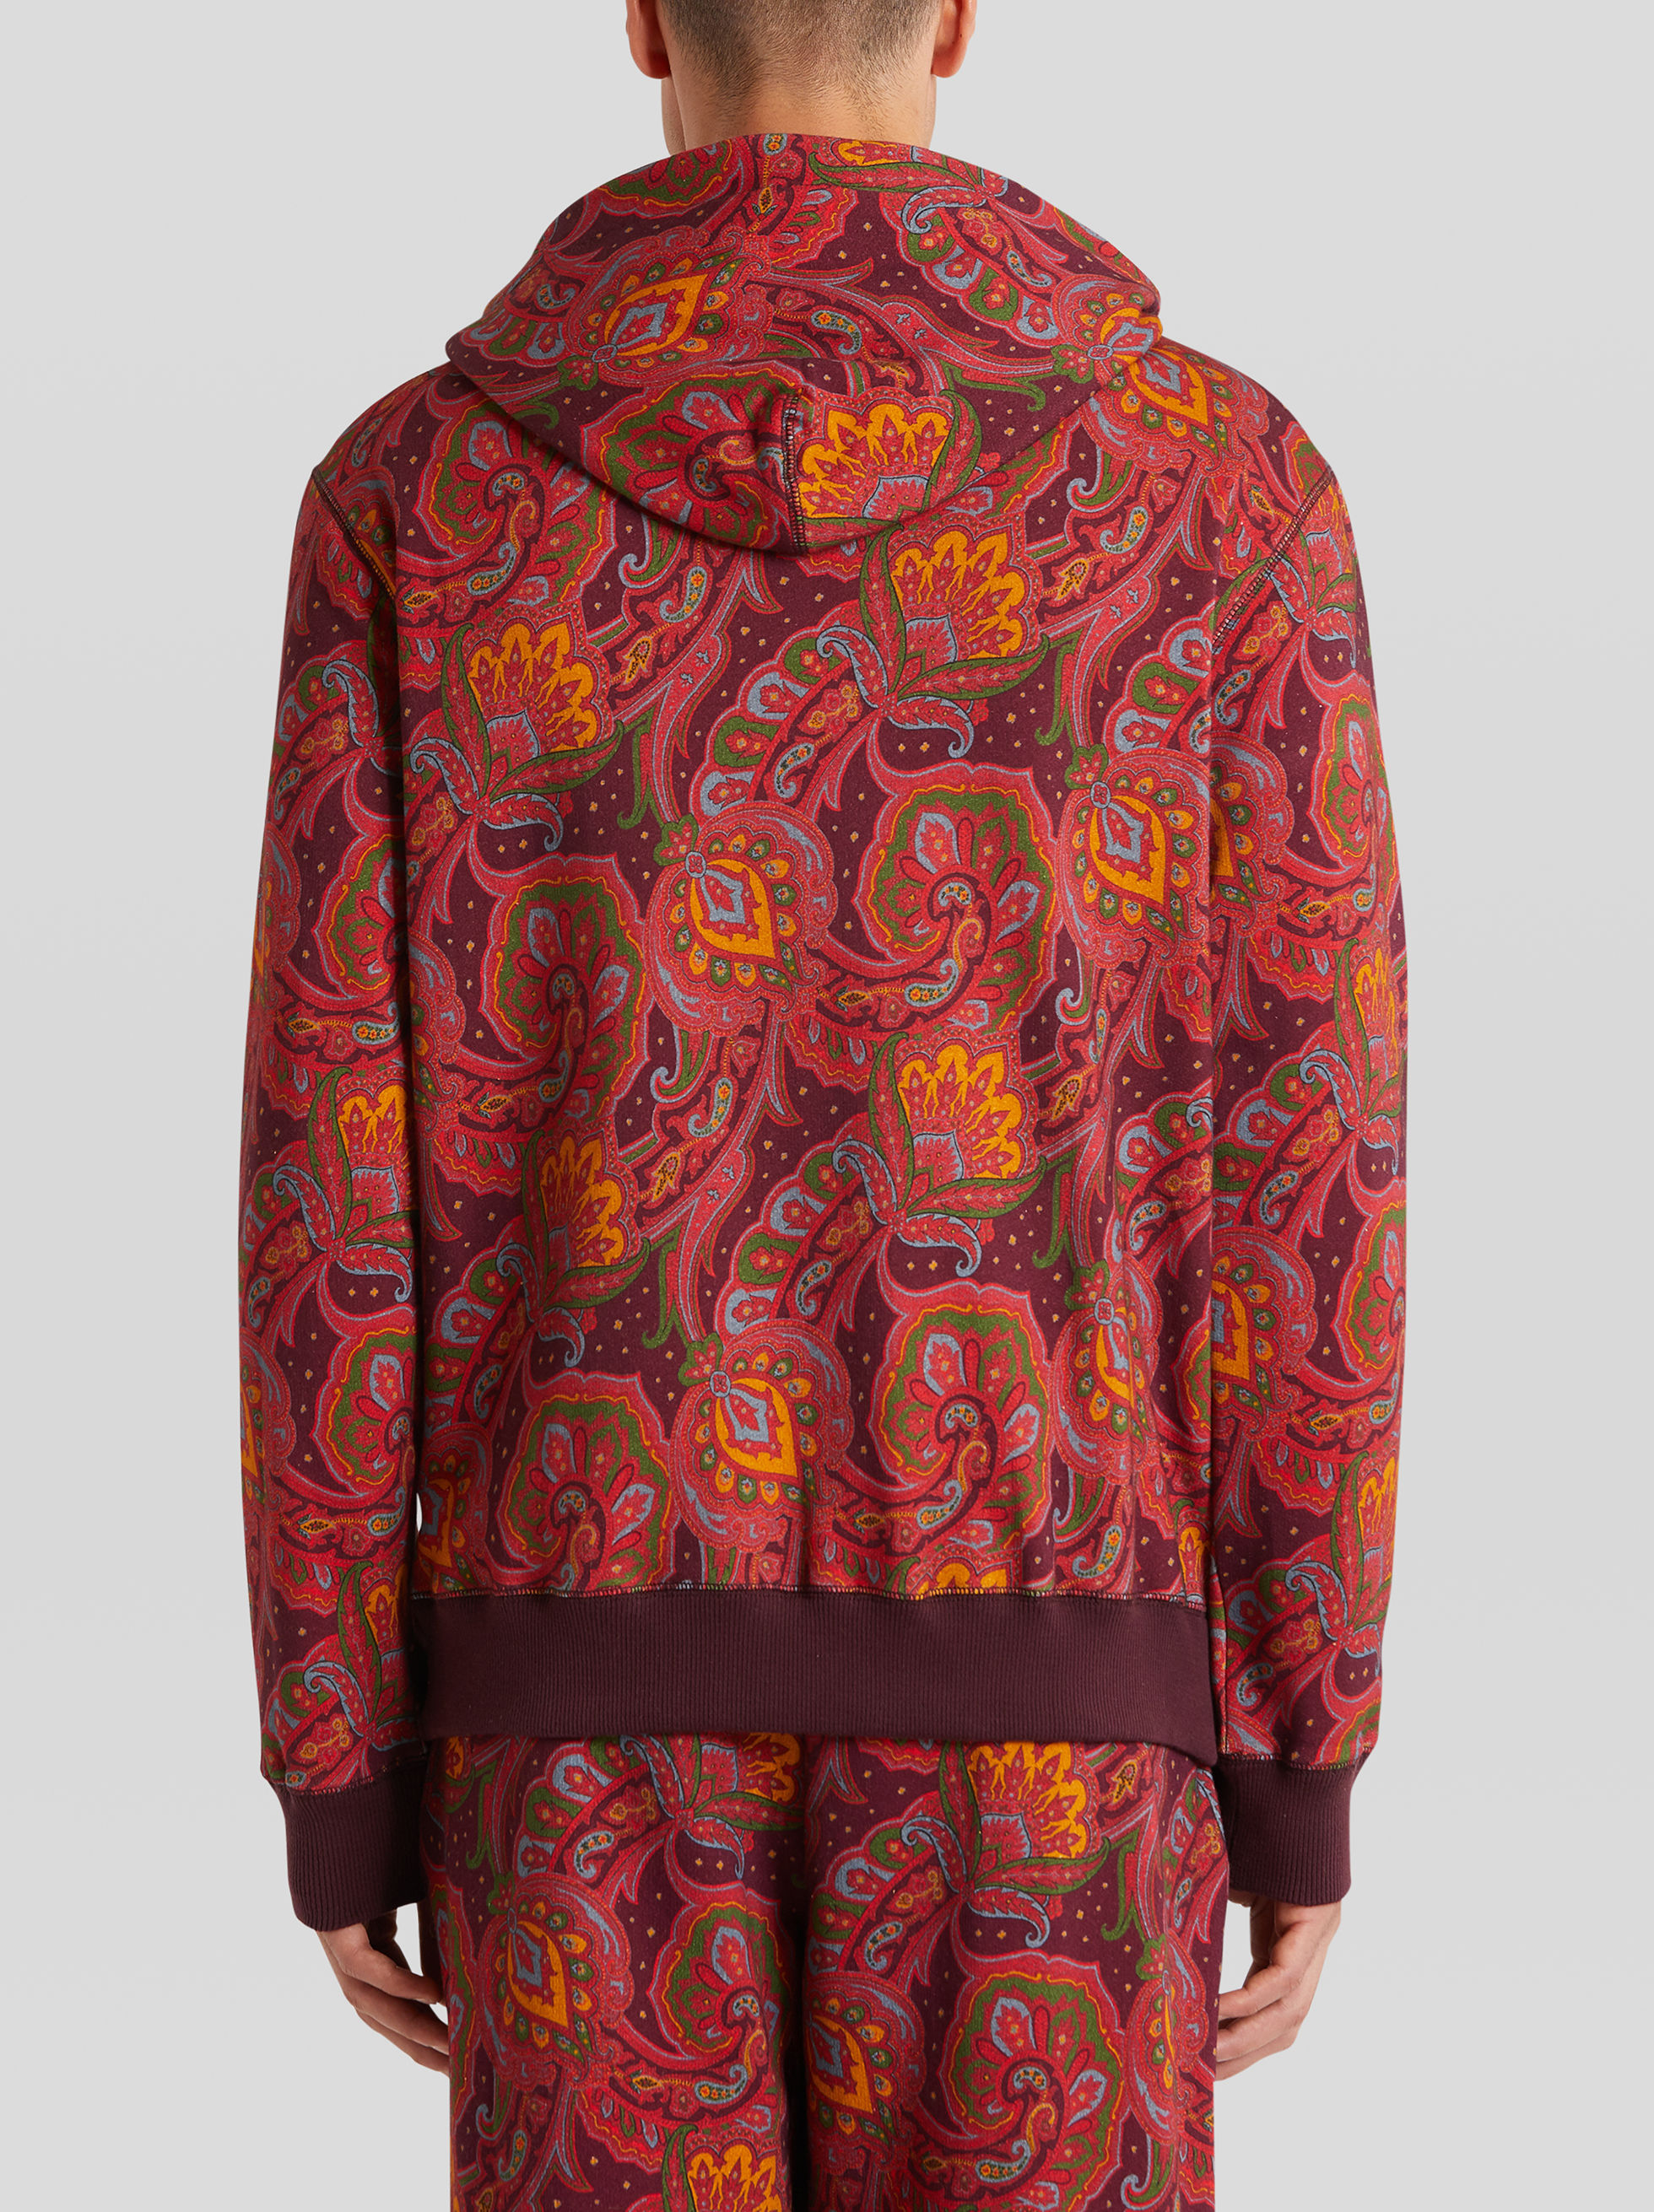 COTTON SWEATSHIRT WITH PAISLEY PATTERN